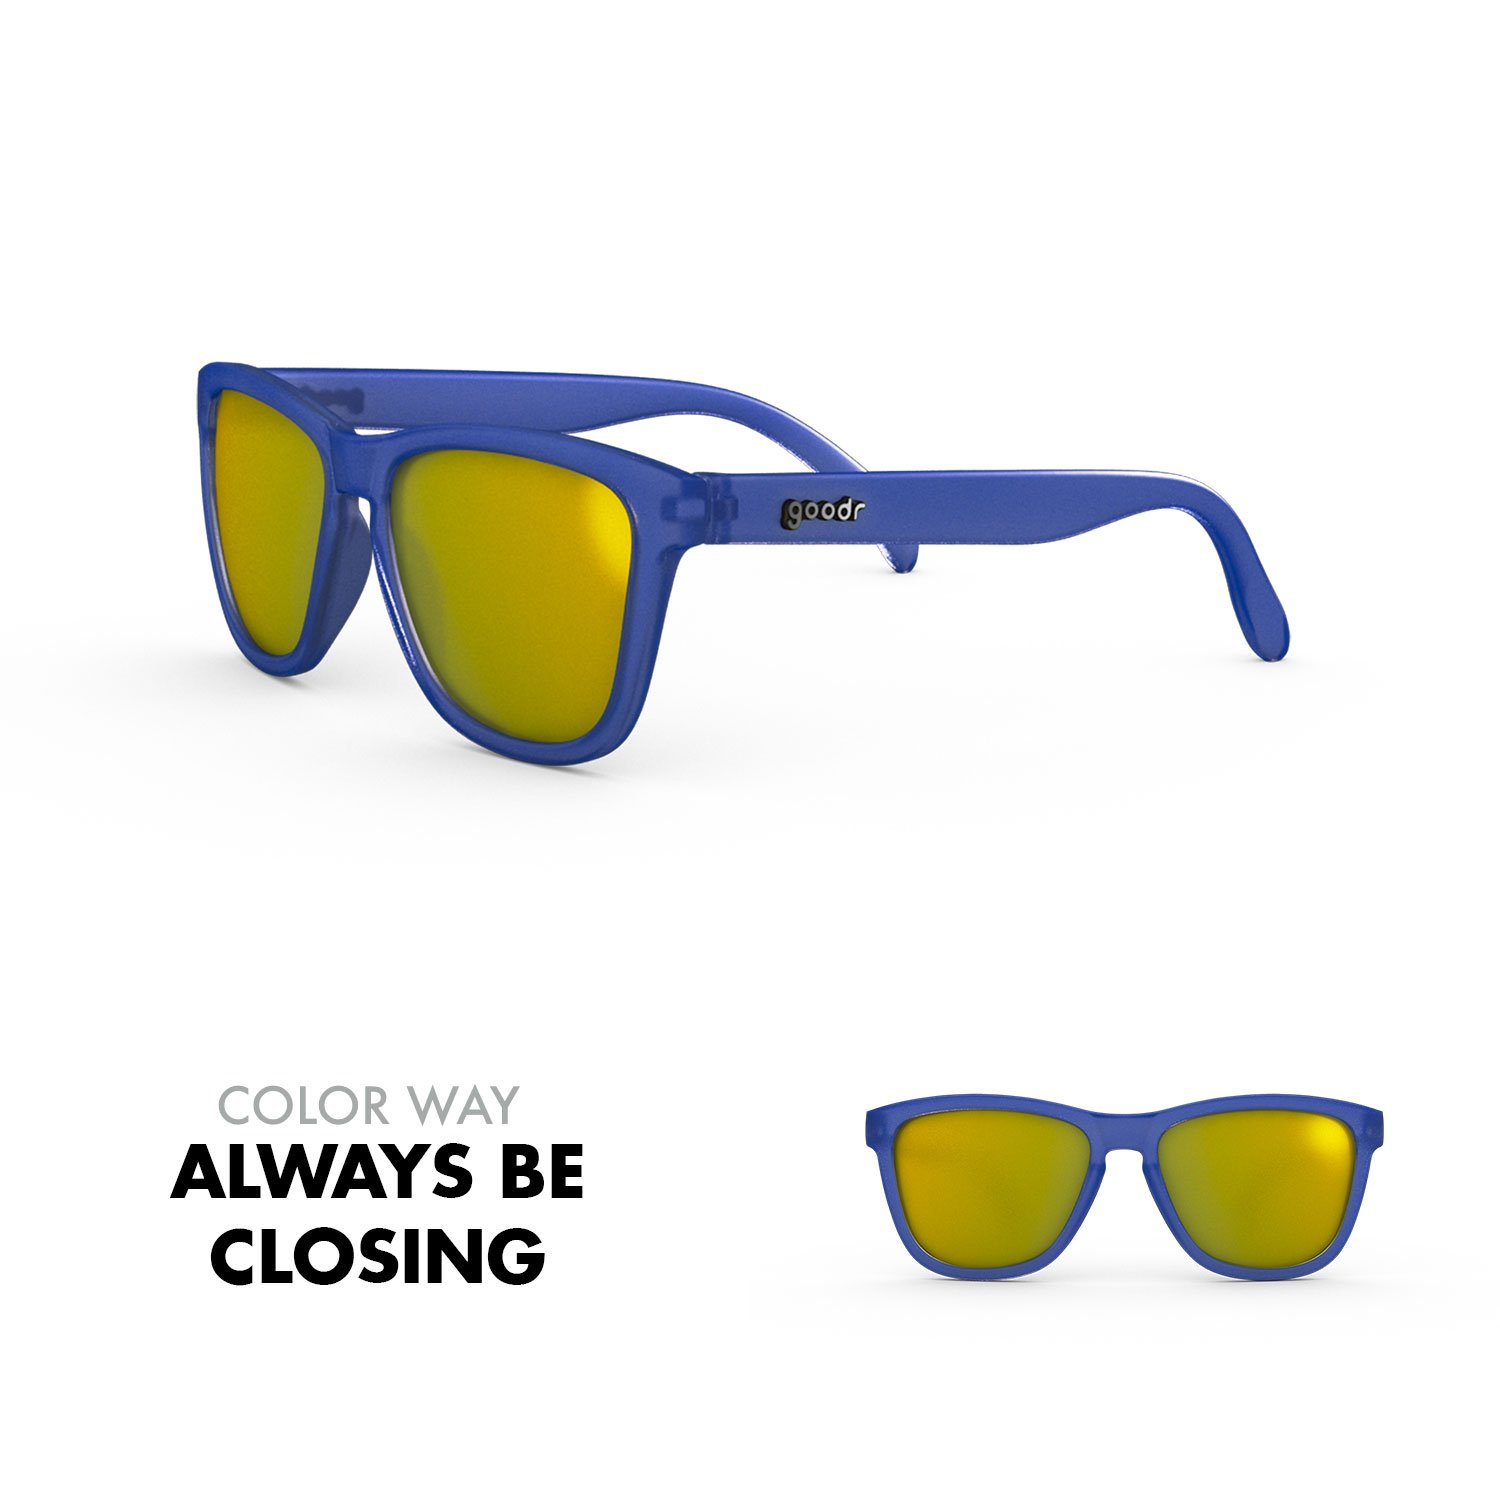 Goodr Running Sunglasses   No Slip, No Bounce, Uv Polarized by Goodr